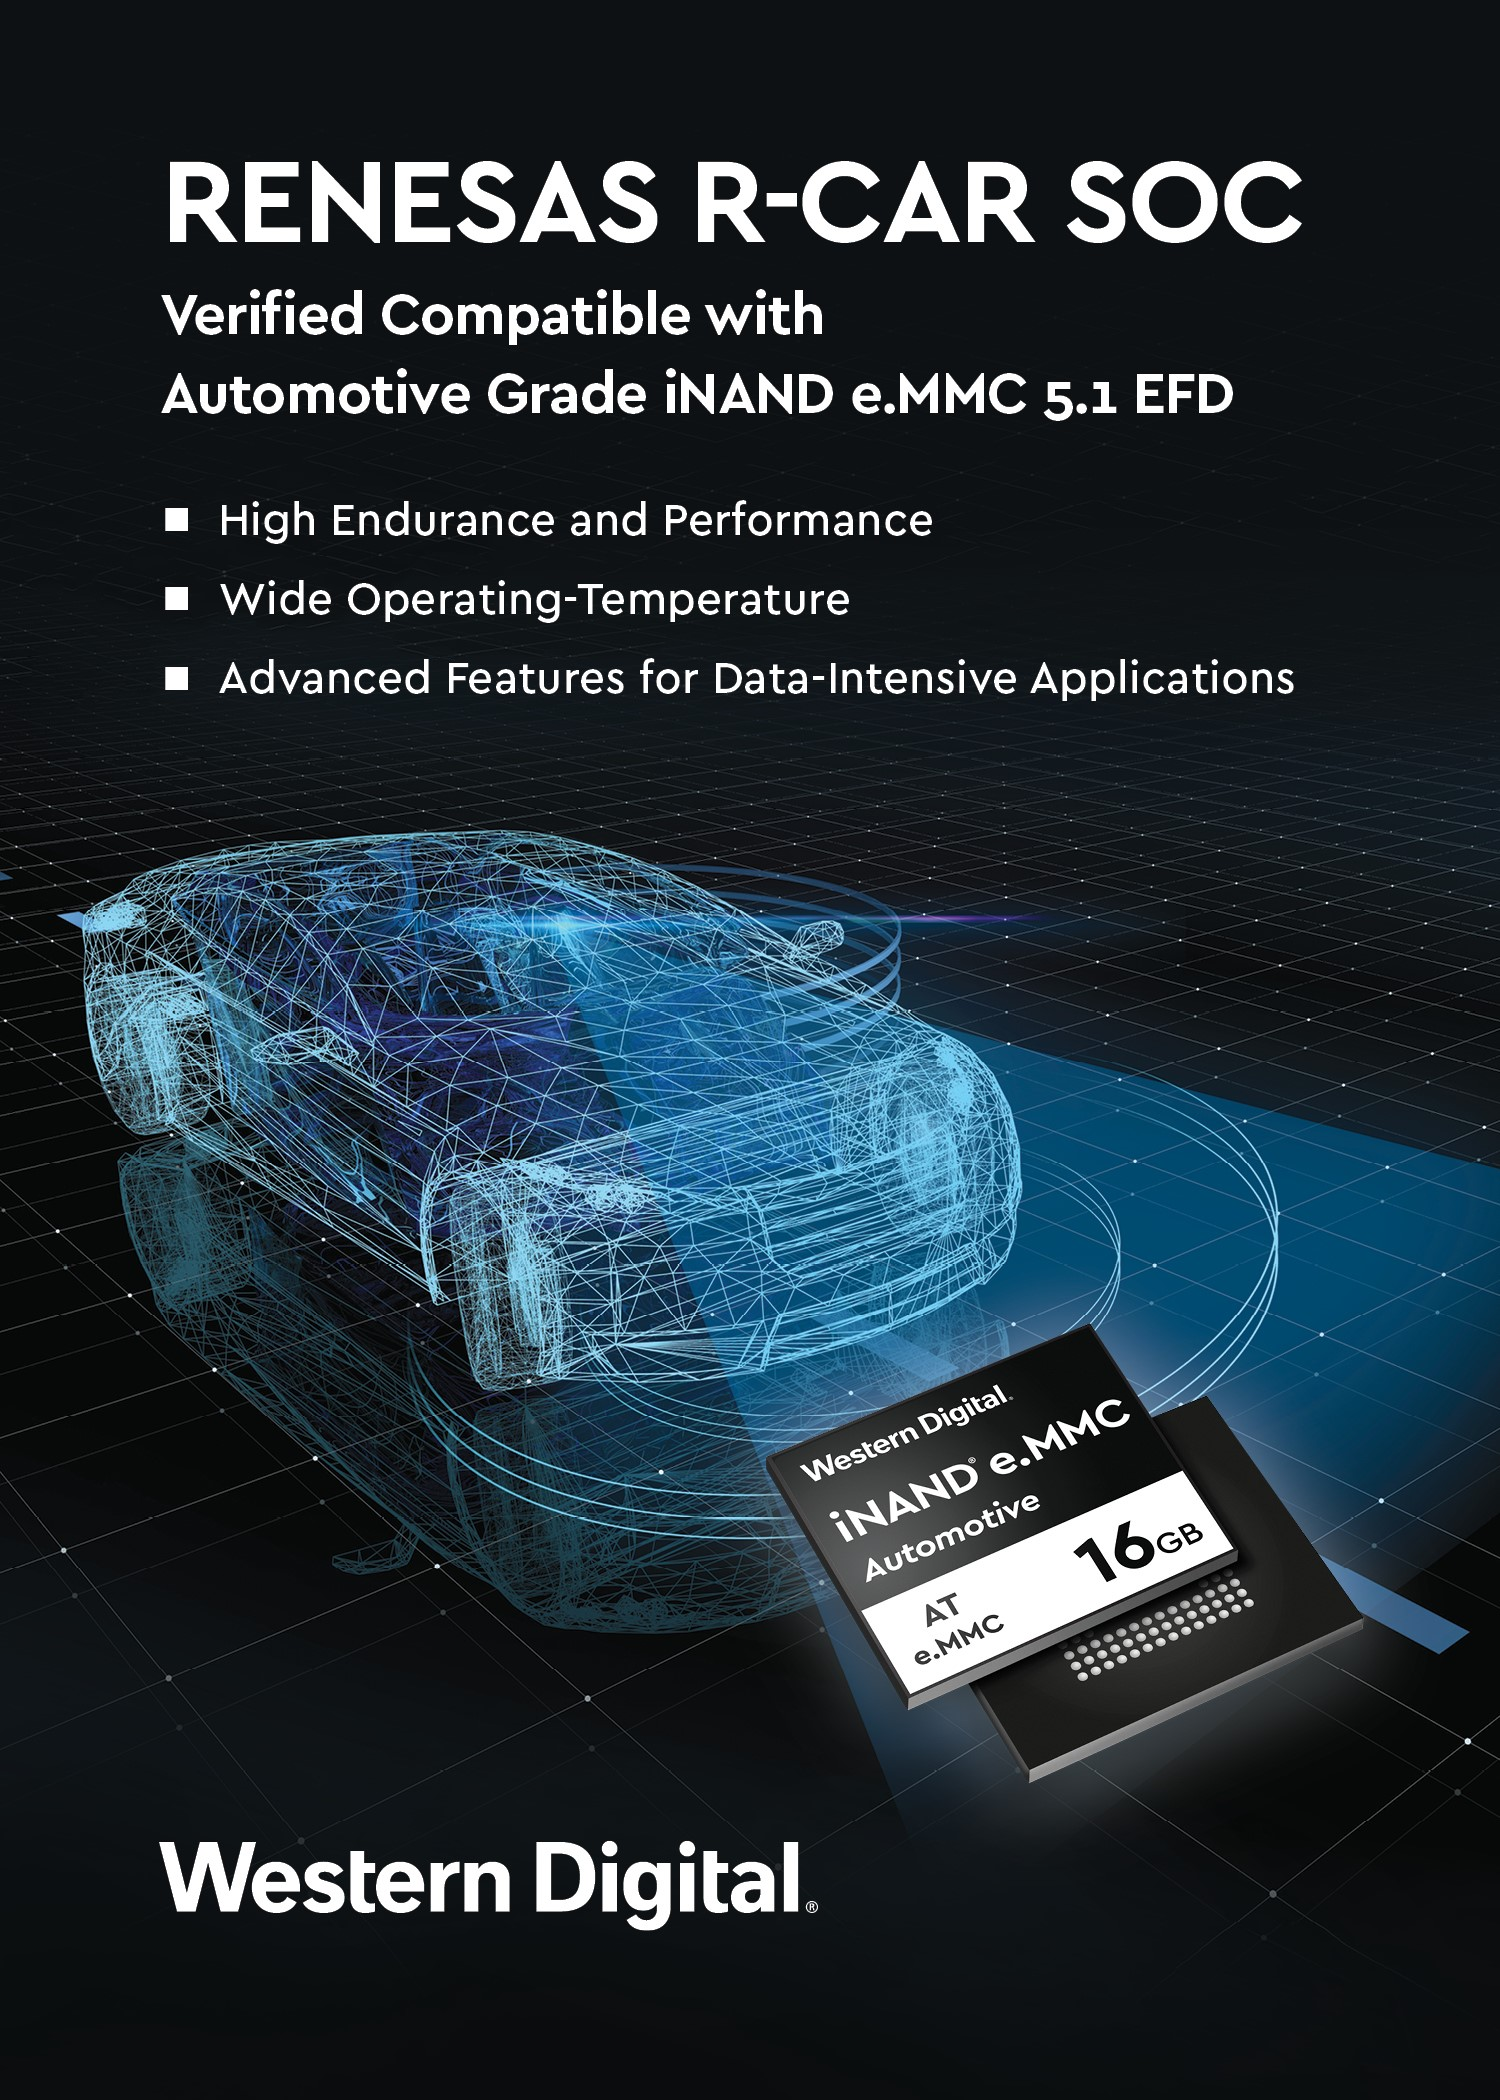 Western Digital's Automotive Grade e.MMC 5.1 EFD